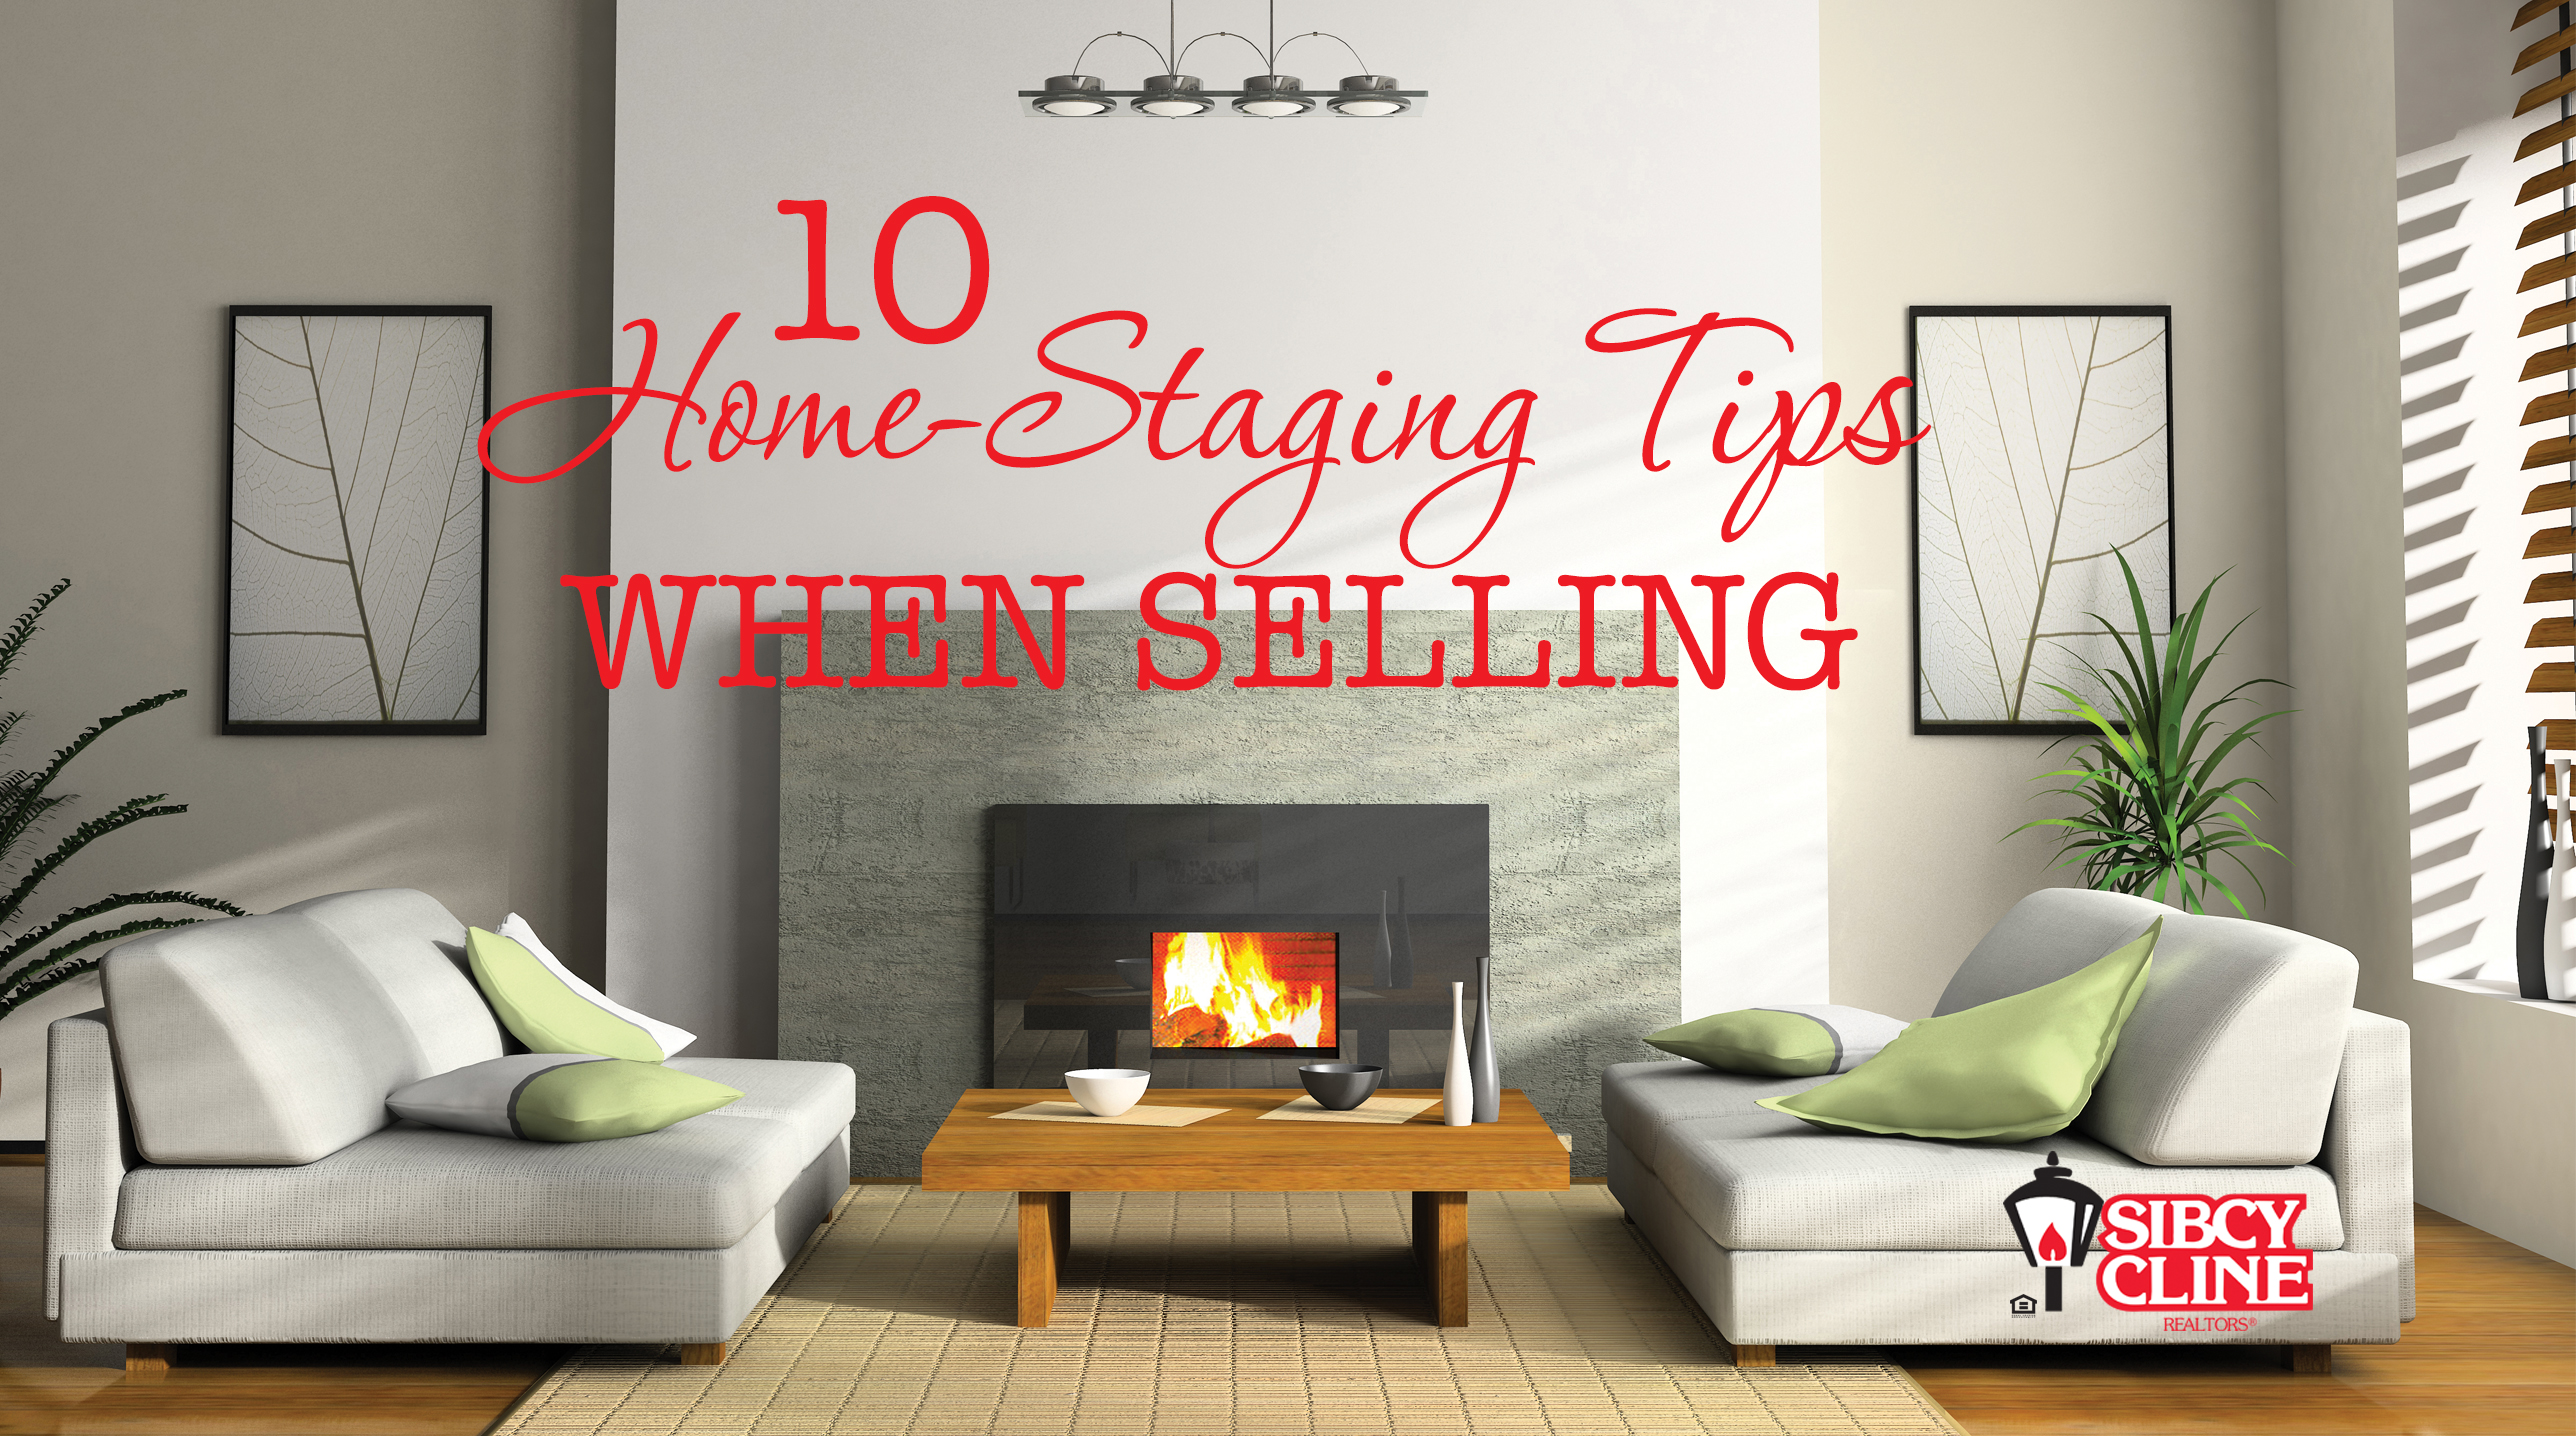 10 home-staging tips when selling